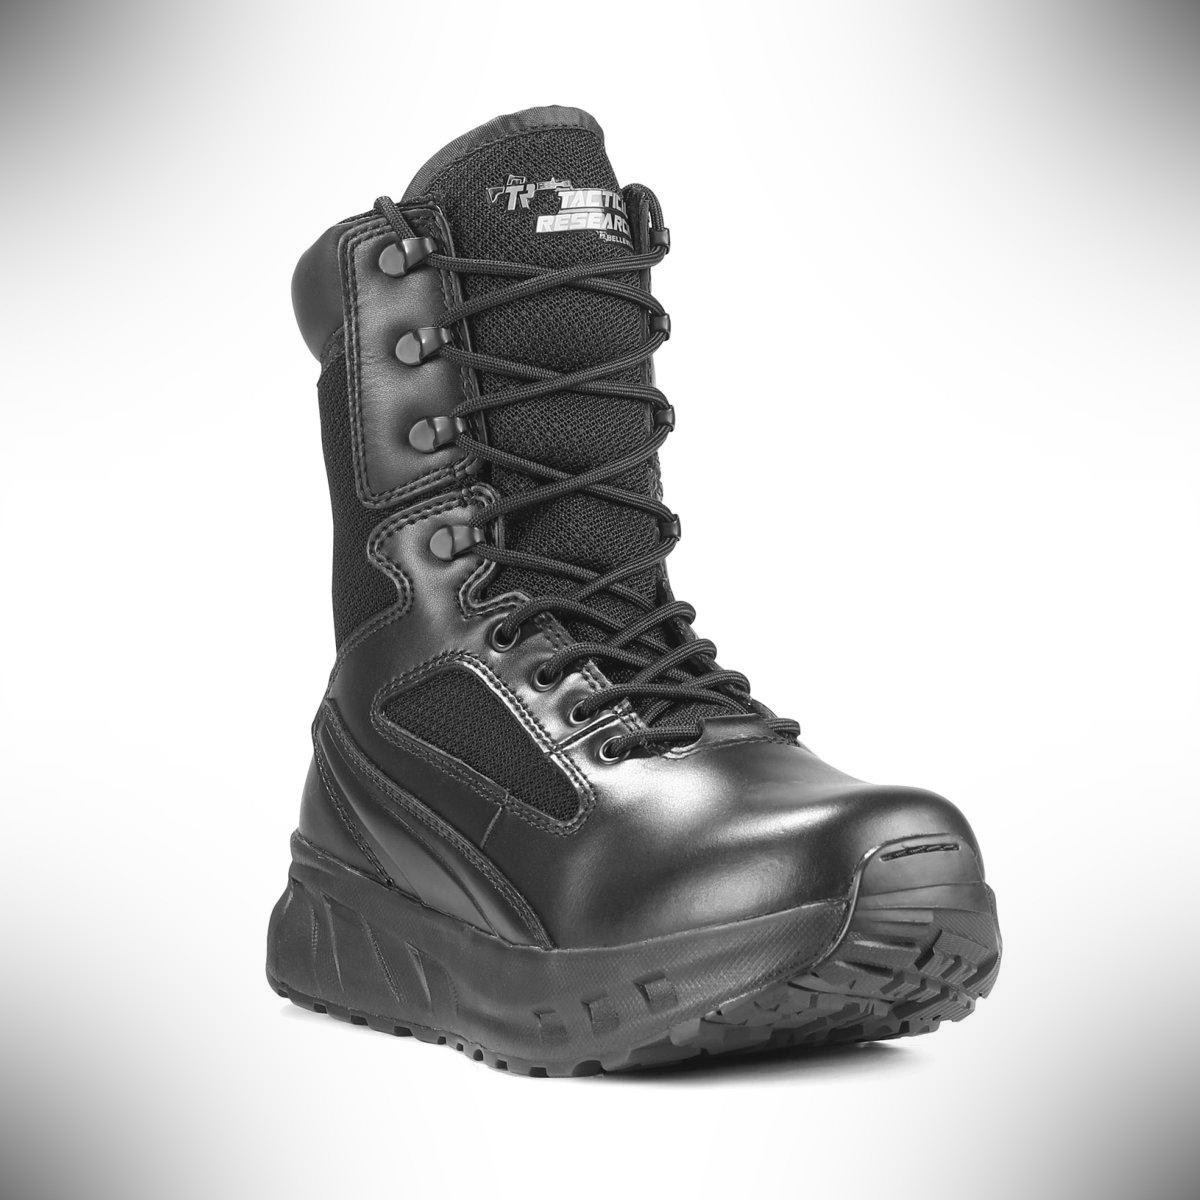 Tactical Research FATT MAXX 8ZWP – waterproof boots for men